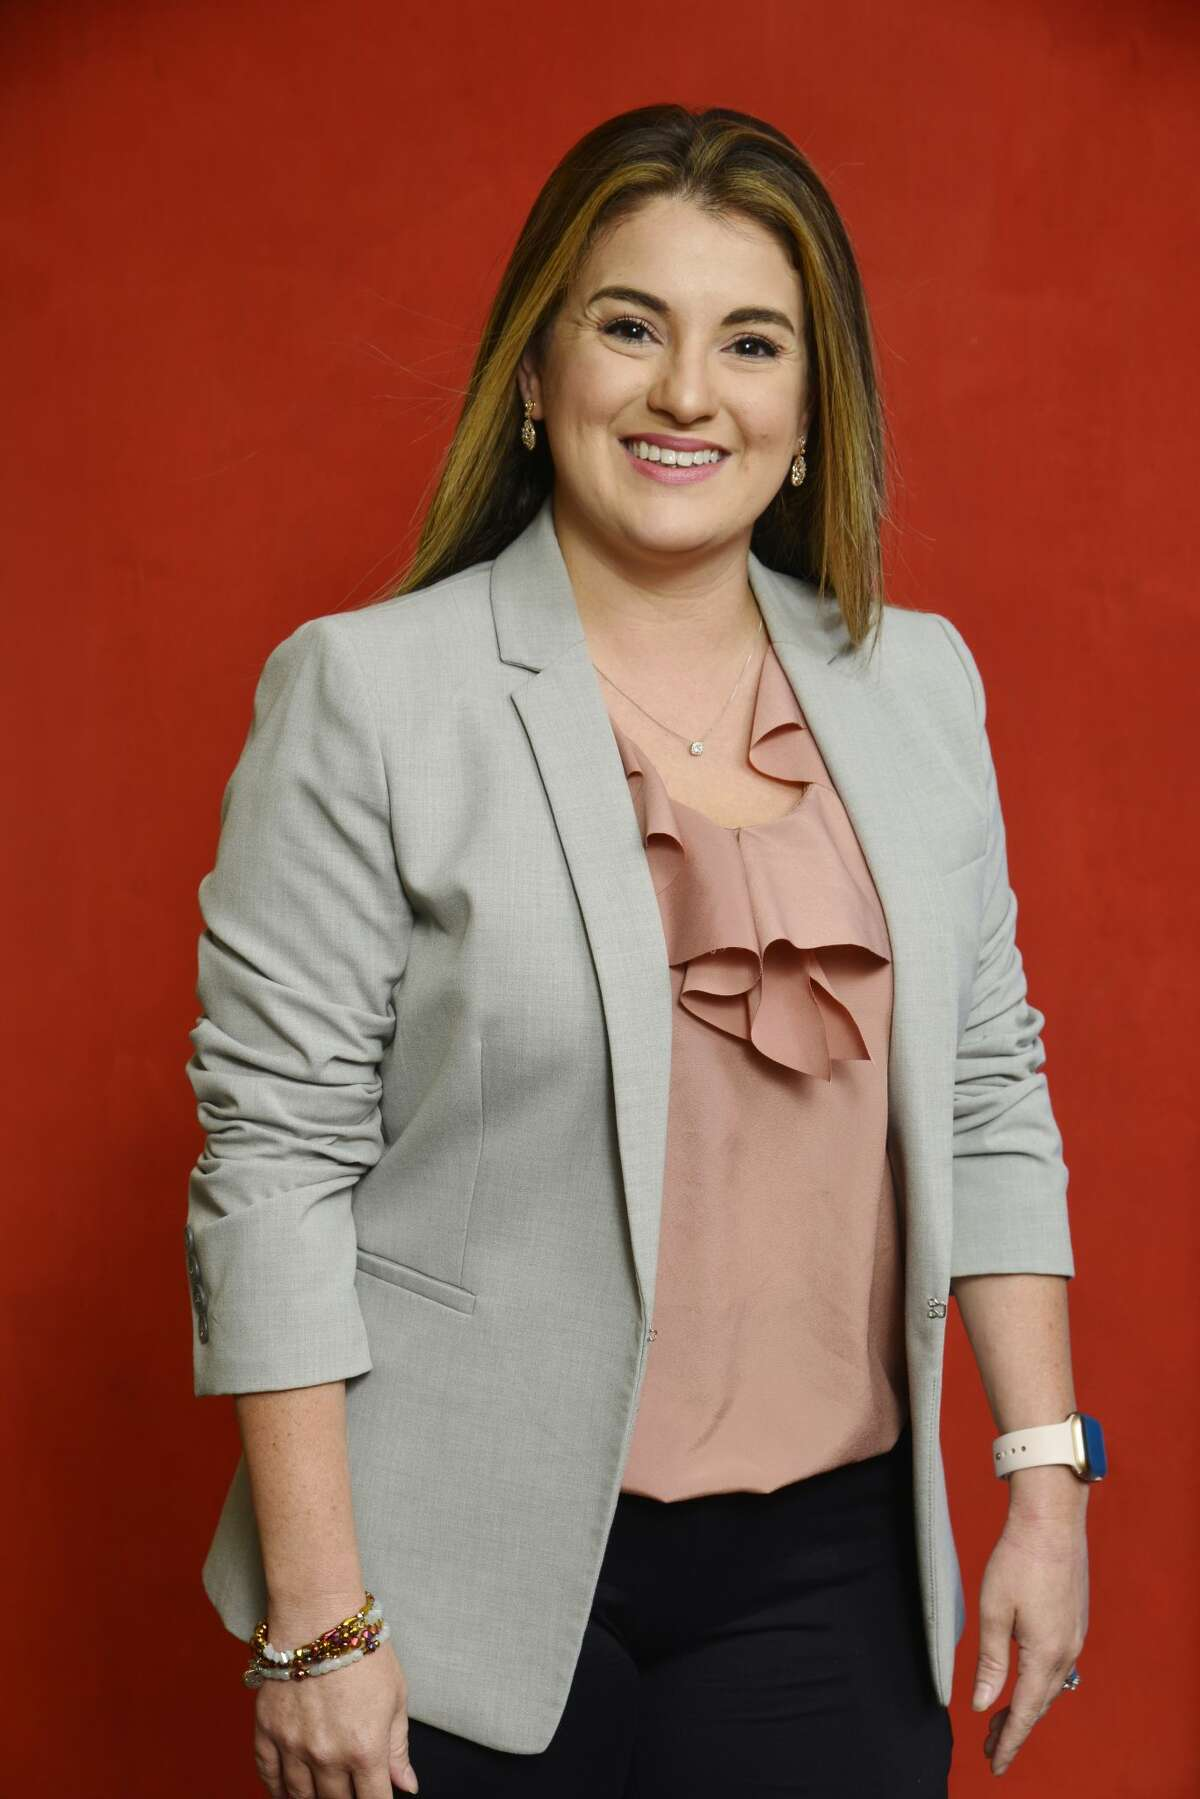 Amanda Heironinus is a member of 2020 class of Southeast Texas Young Professionals Organization's 40 Under 40.